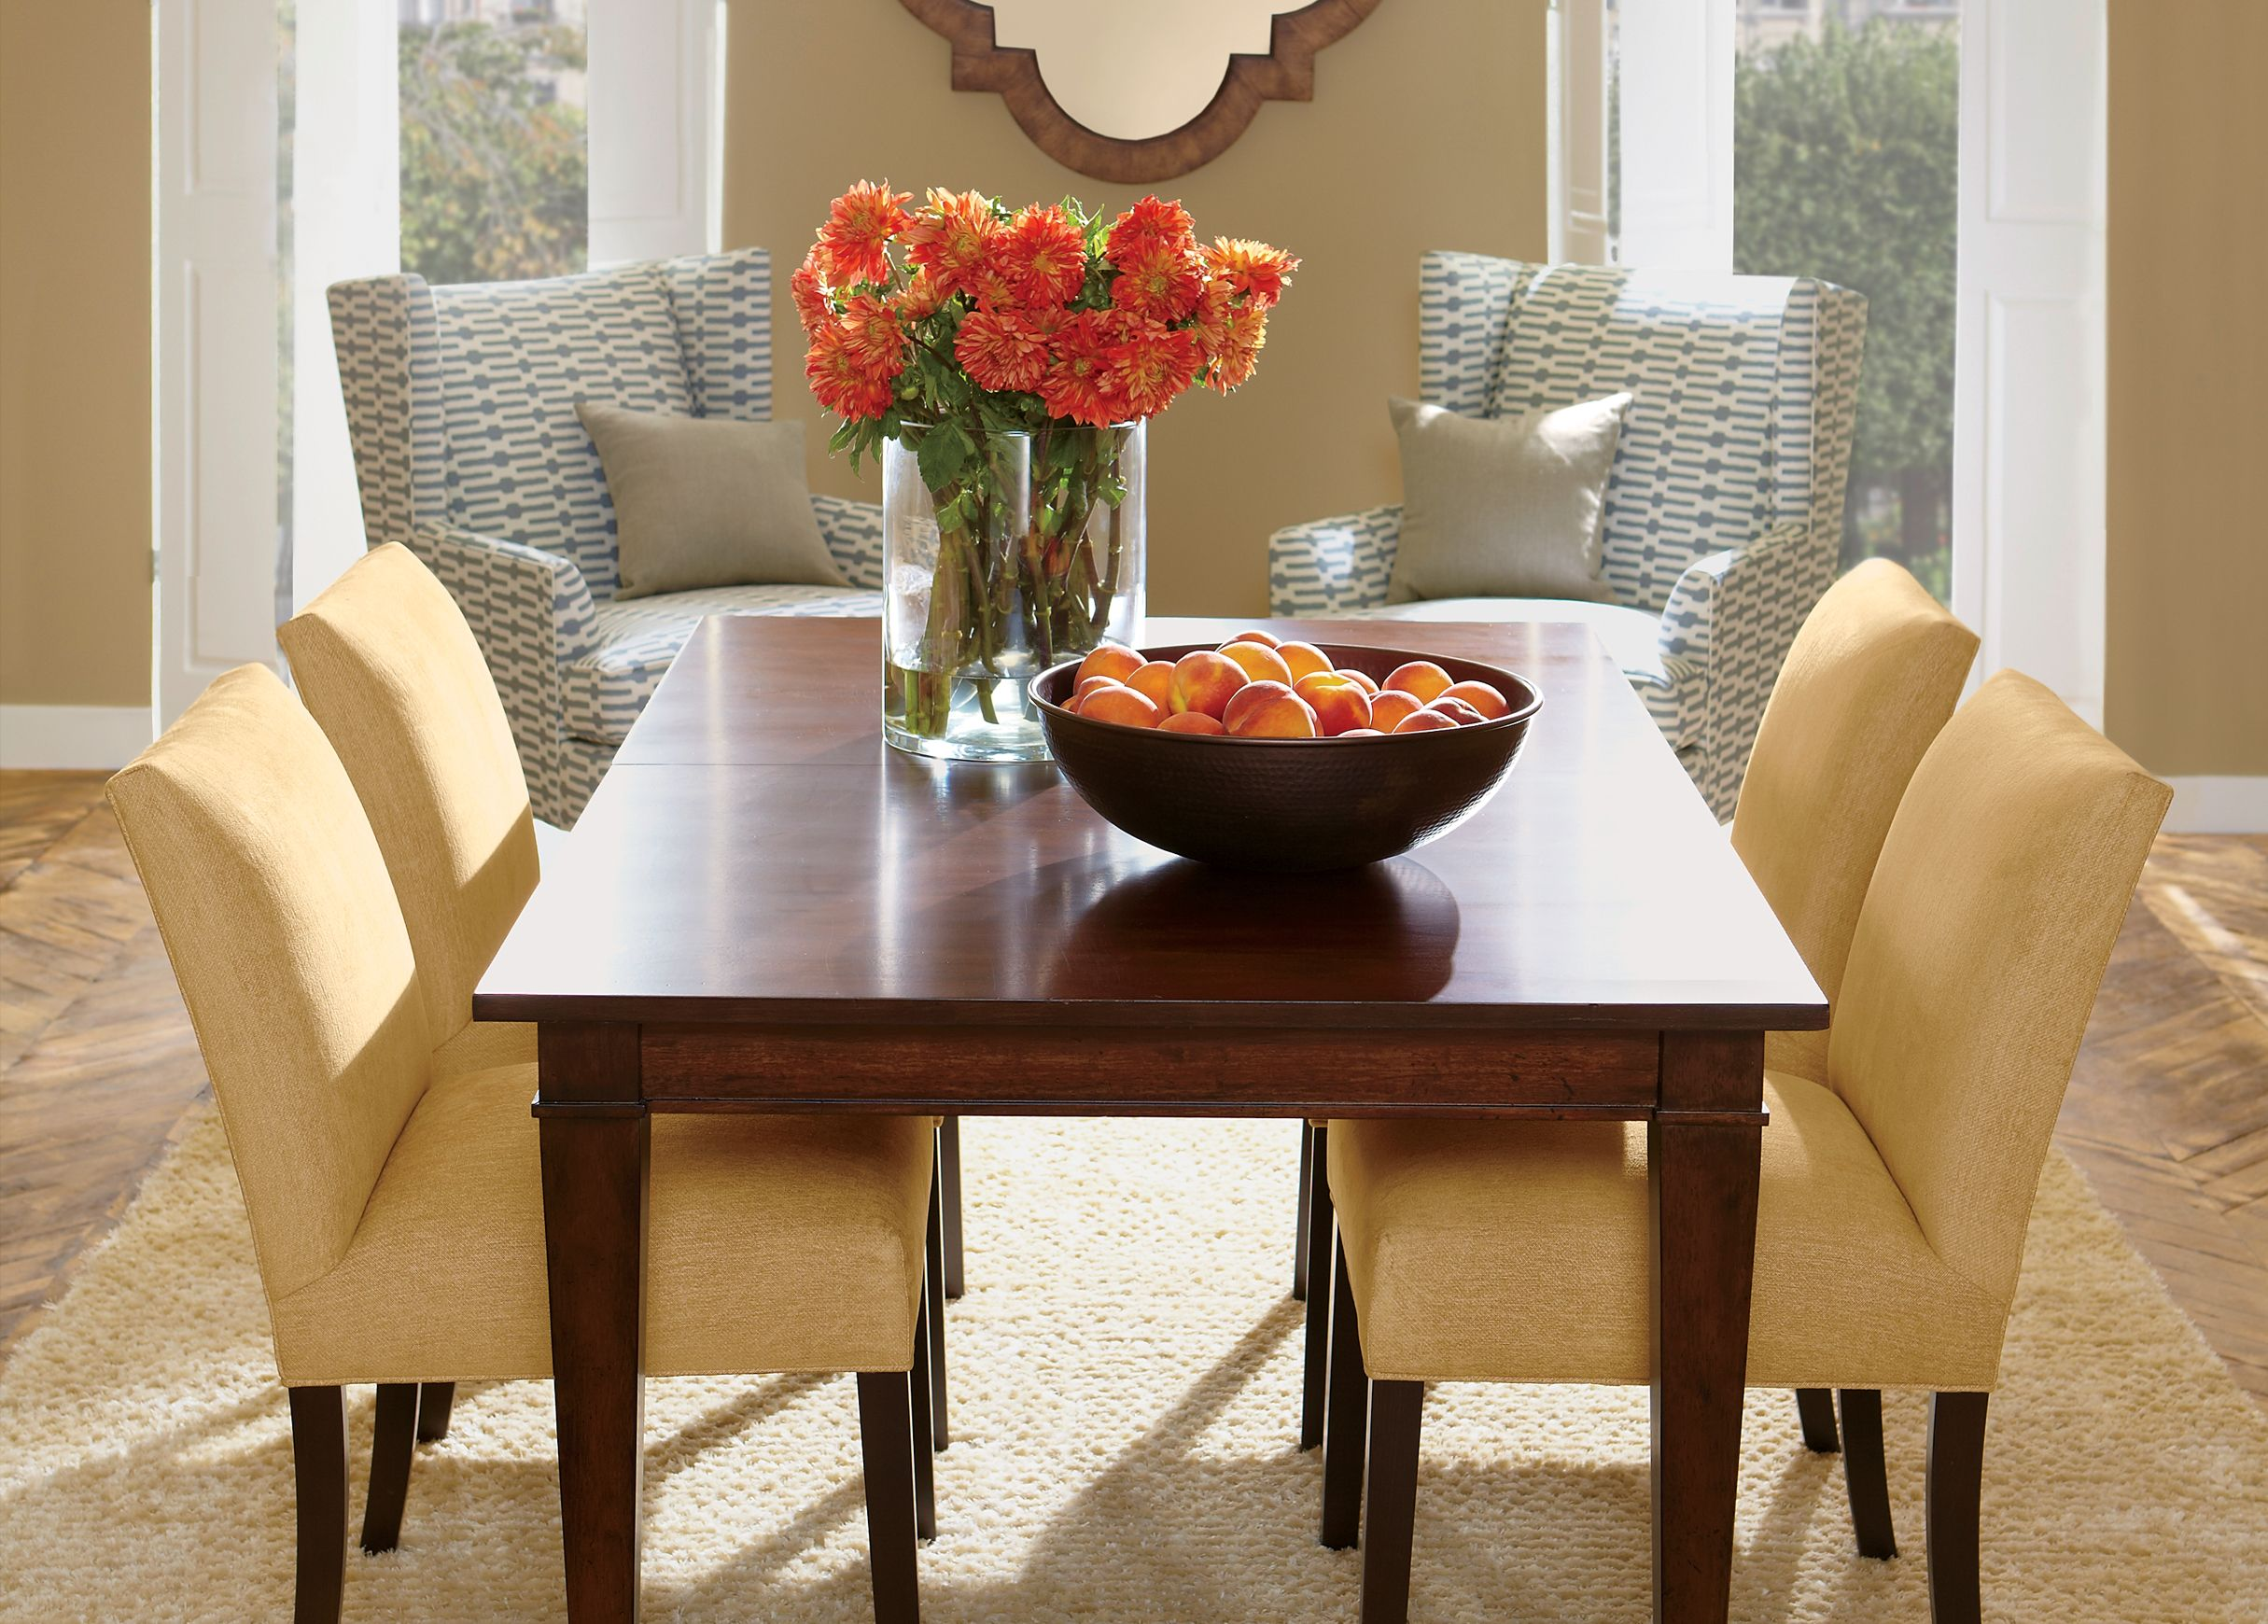 The Art Of The Dinner Party  Natural Light Room And Lights Amusing Comfortable Dining Room Sets Design Decoration